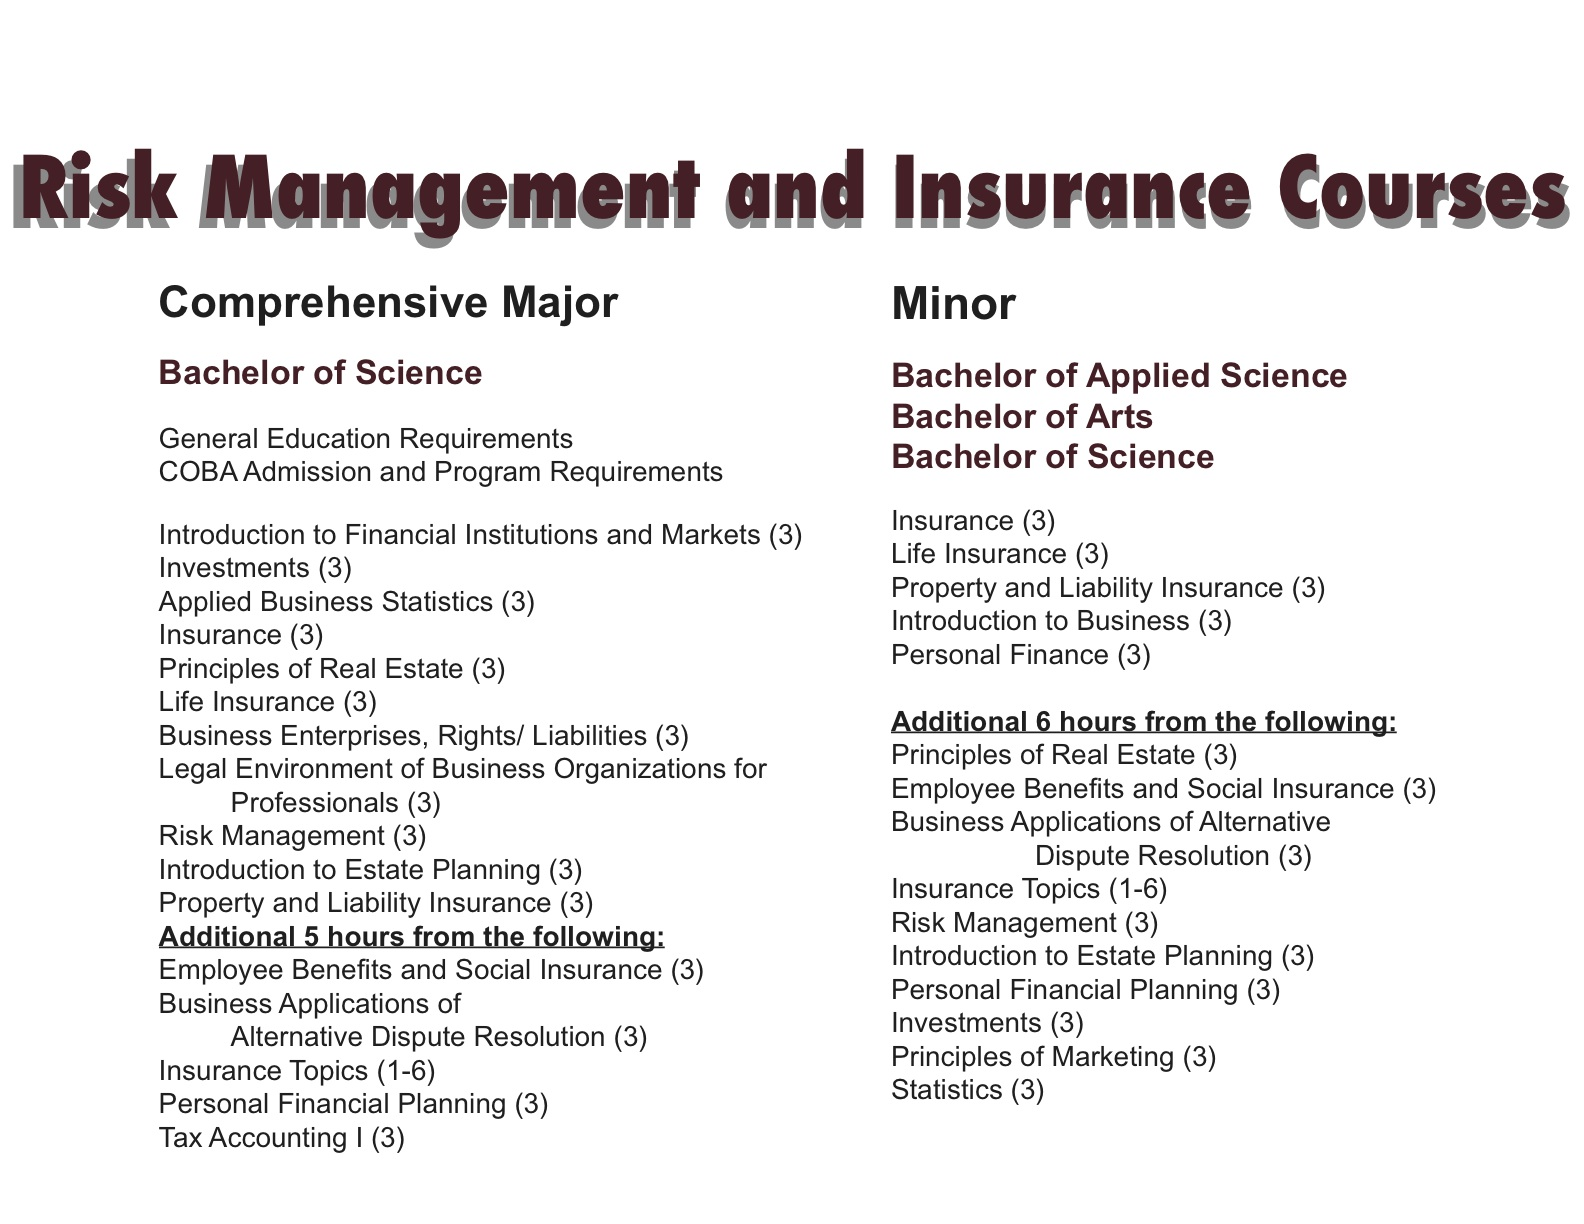 Risk Management and Insurance universities courses